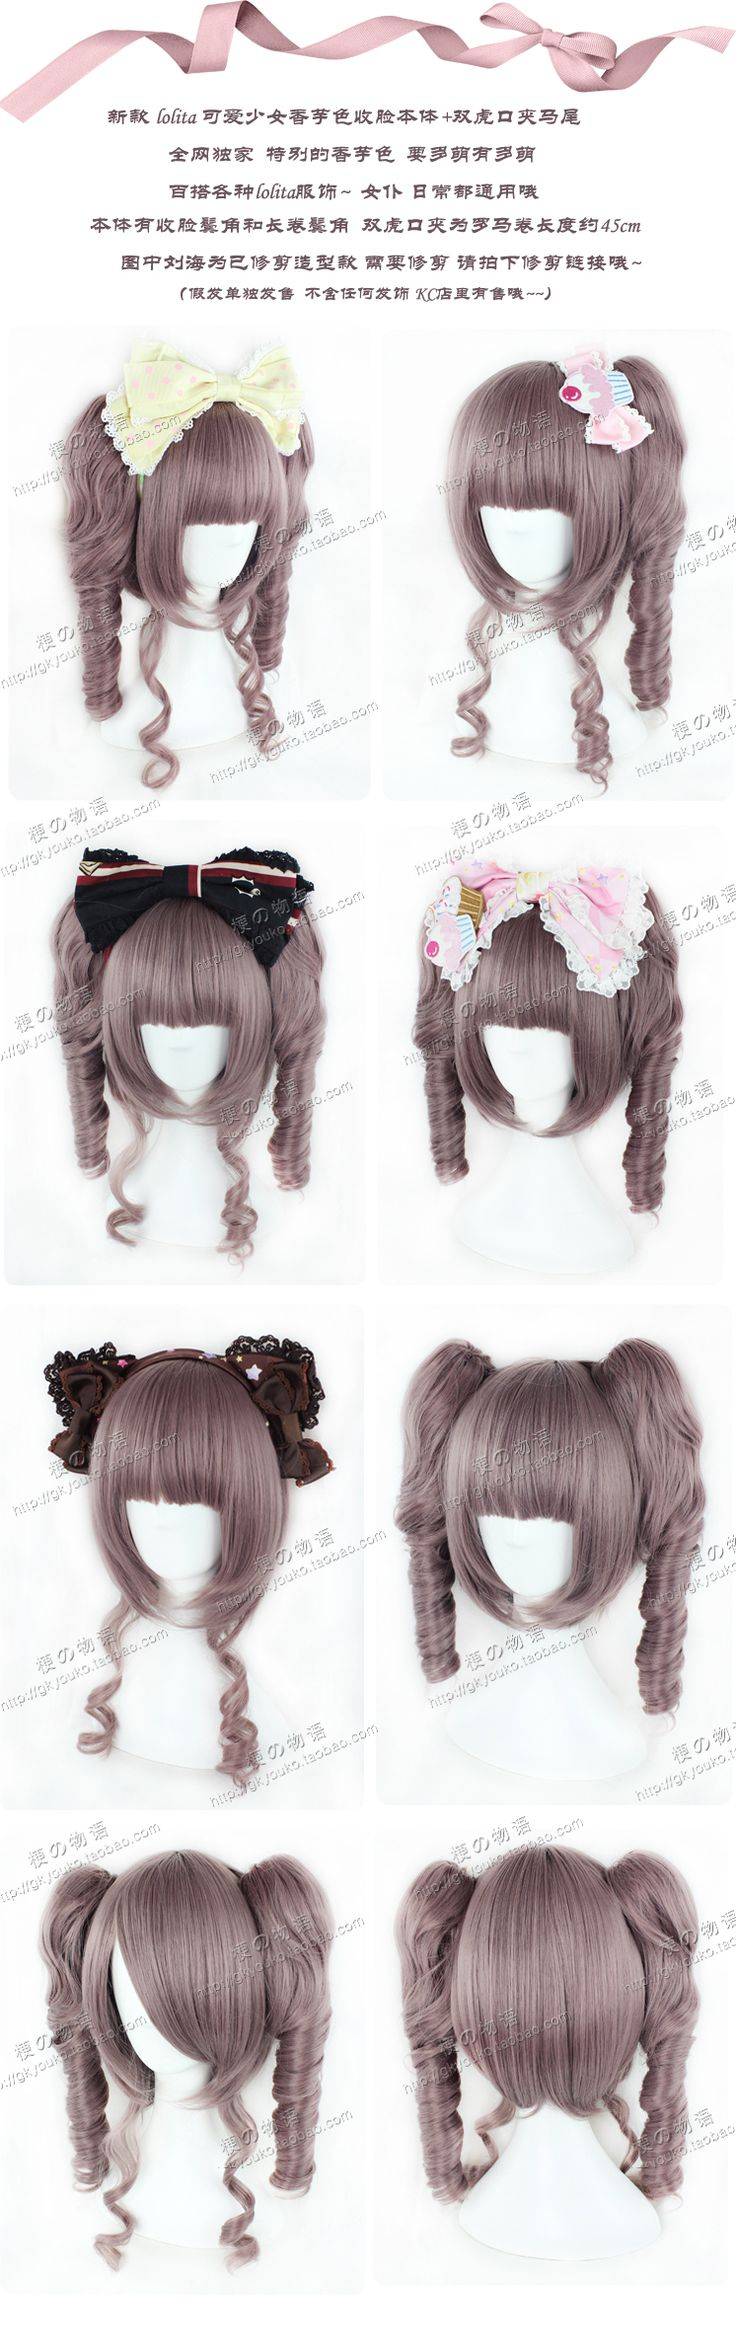 kyouko wig | lolita Lolita maid taro color collection face + body double ponytail curls Rome - Taobao